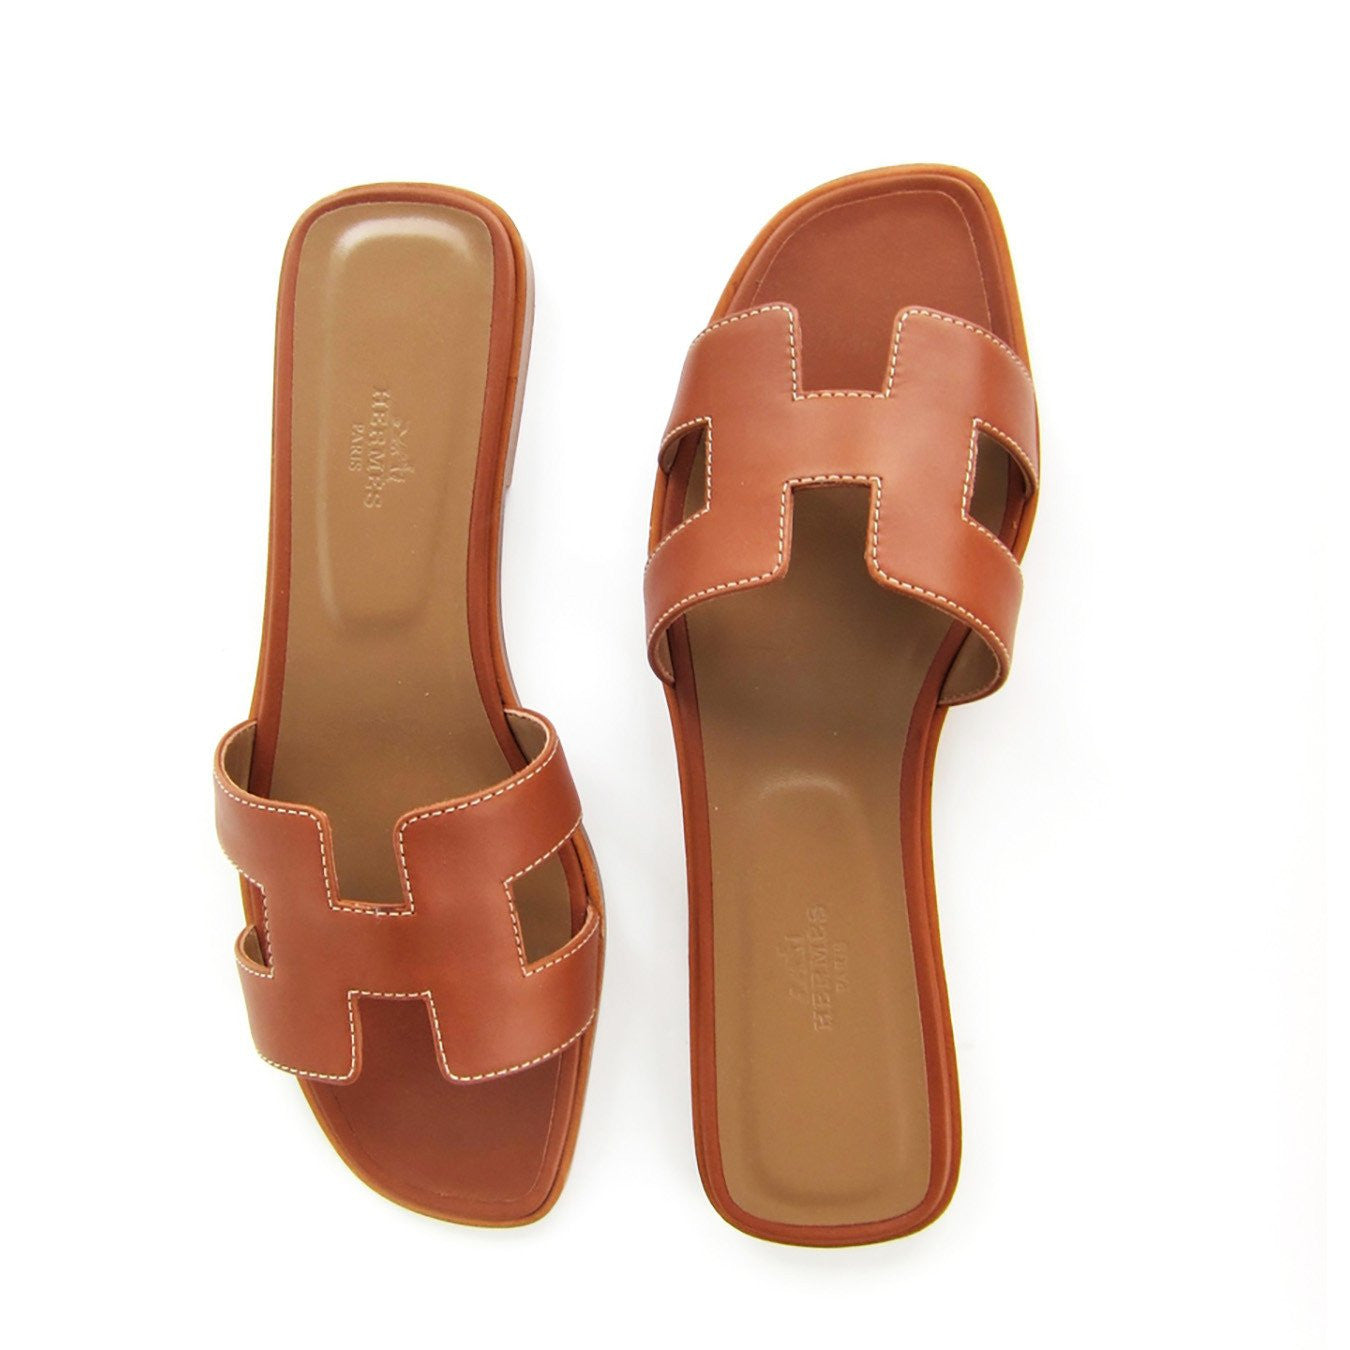 Hermès Leather Sandals 1bDlZ